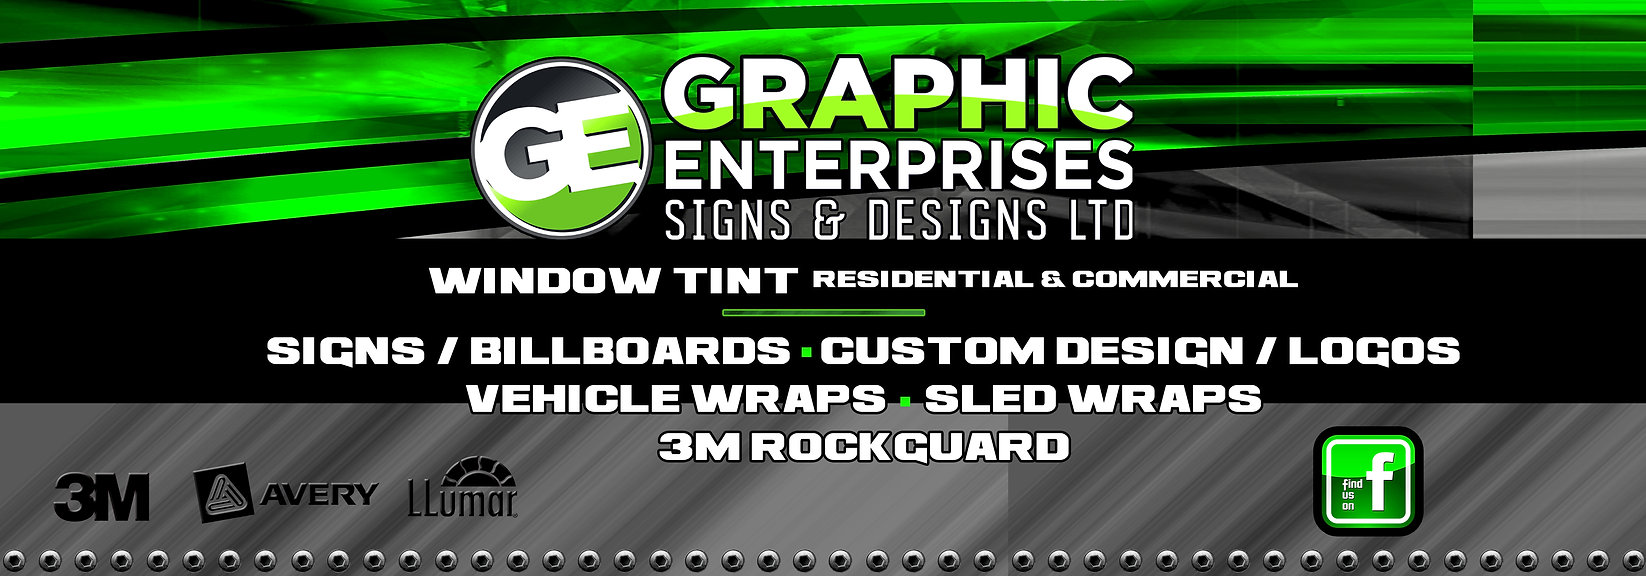 Graphic Enterprises Vernon